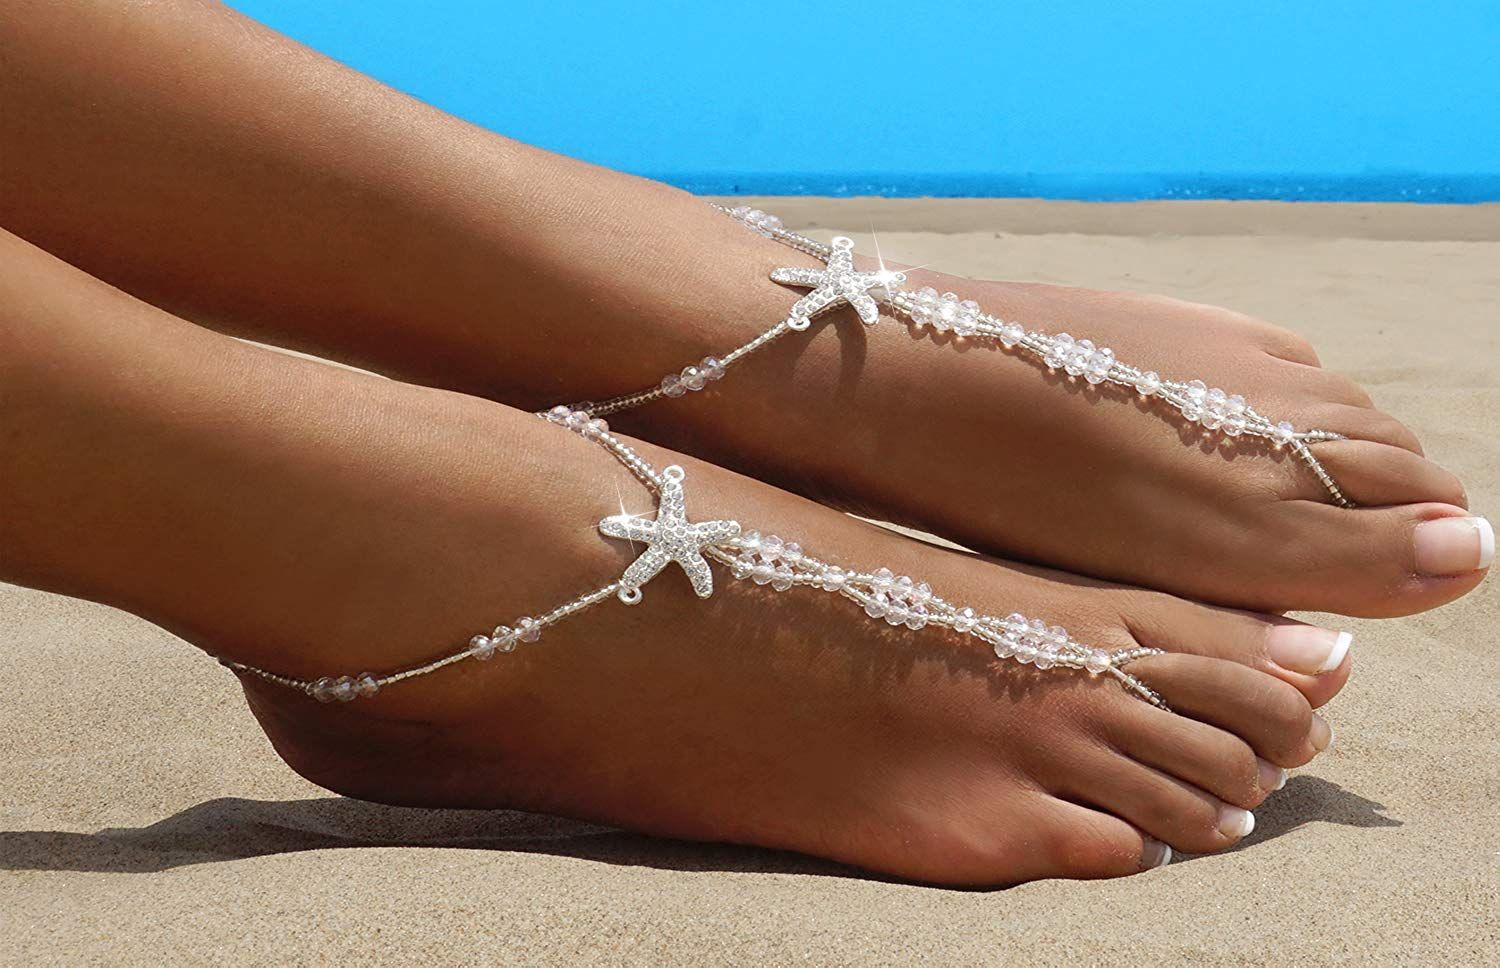 b8027e099 Bellady 2Pcs Pearl Ankle Chain Barefoot Sandals with Starfish Beach Wedding  Foot Jewelry 4.1 out of 5 stars 15 customer reviews Price   9.99